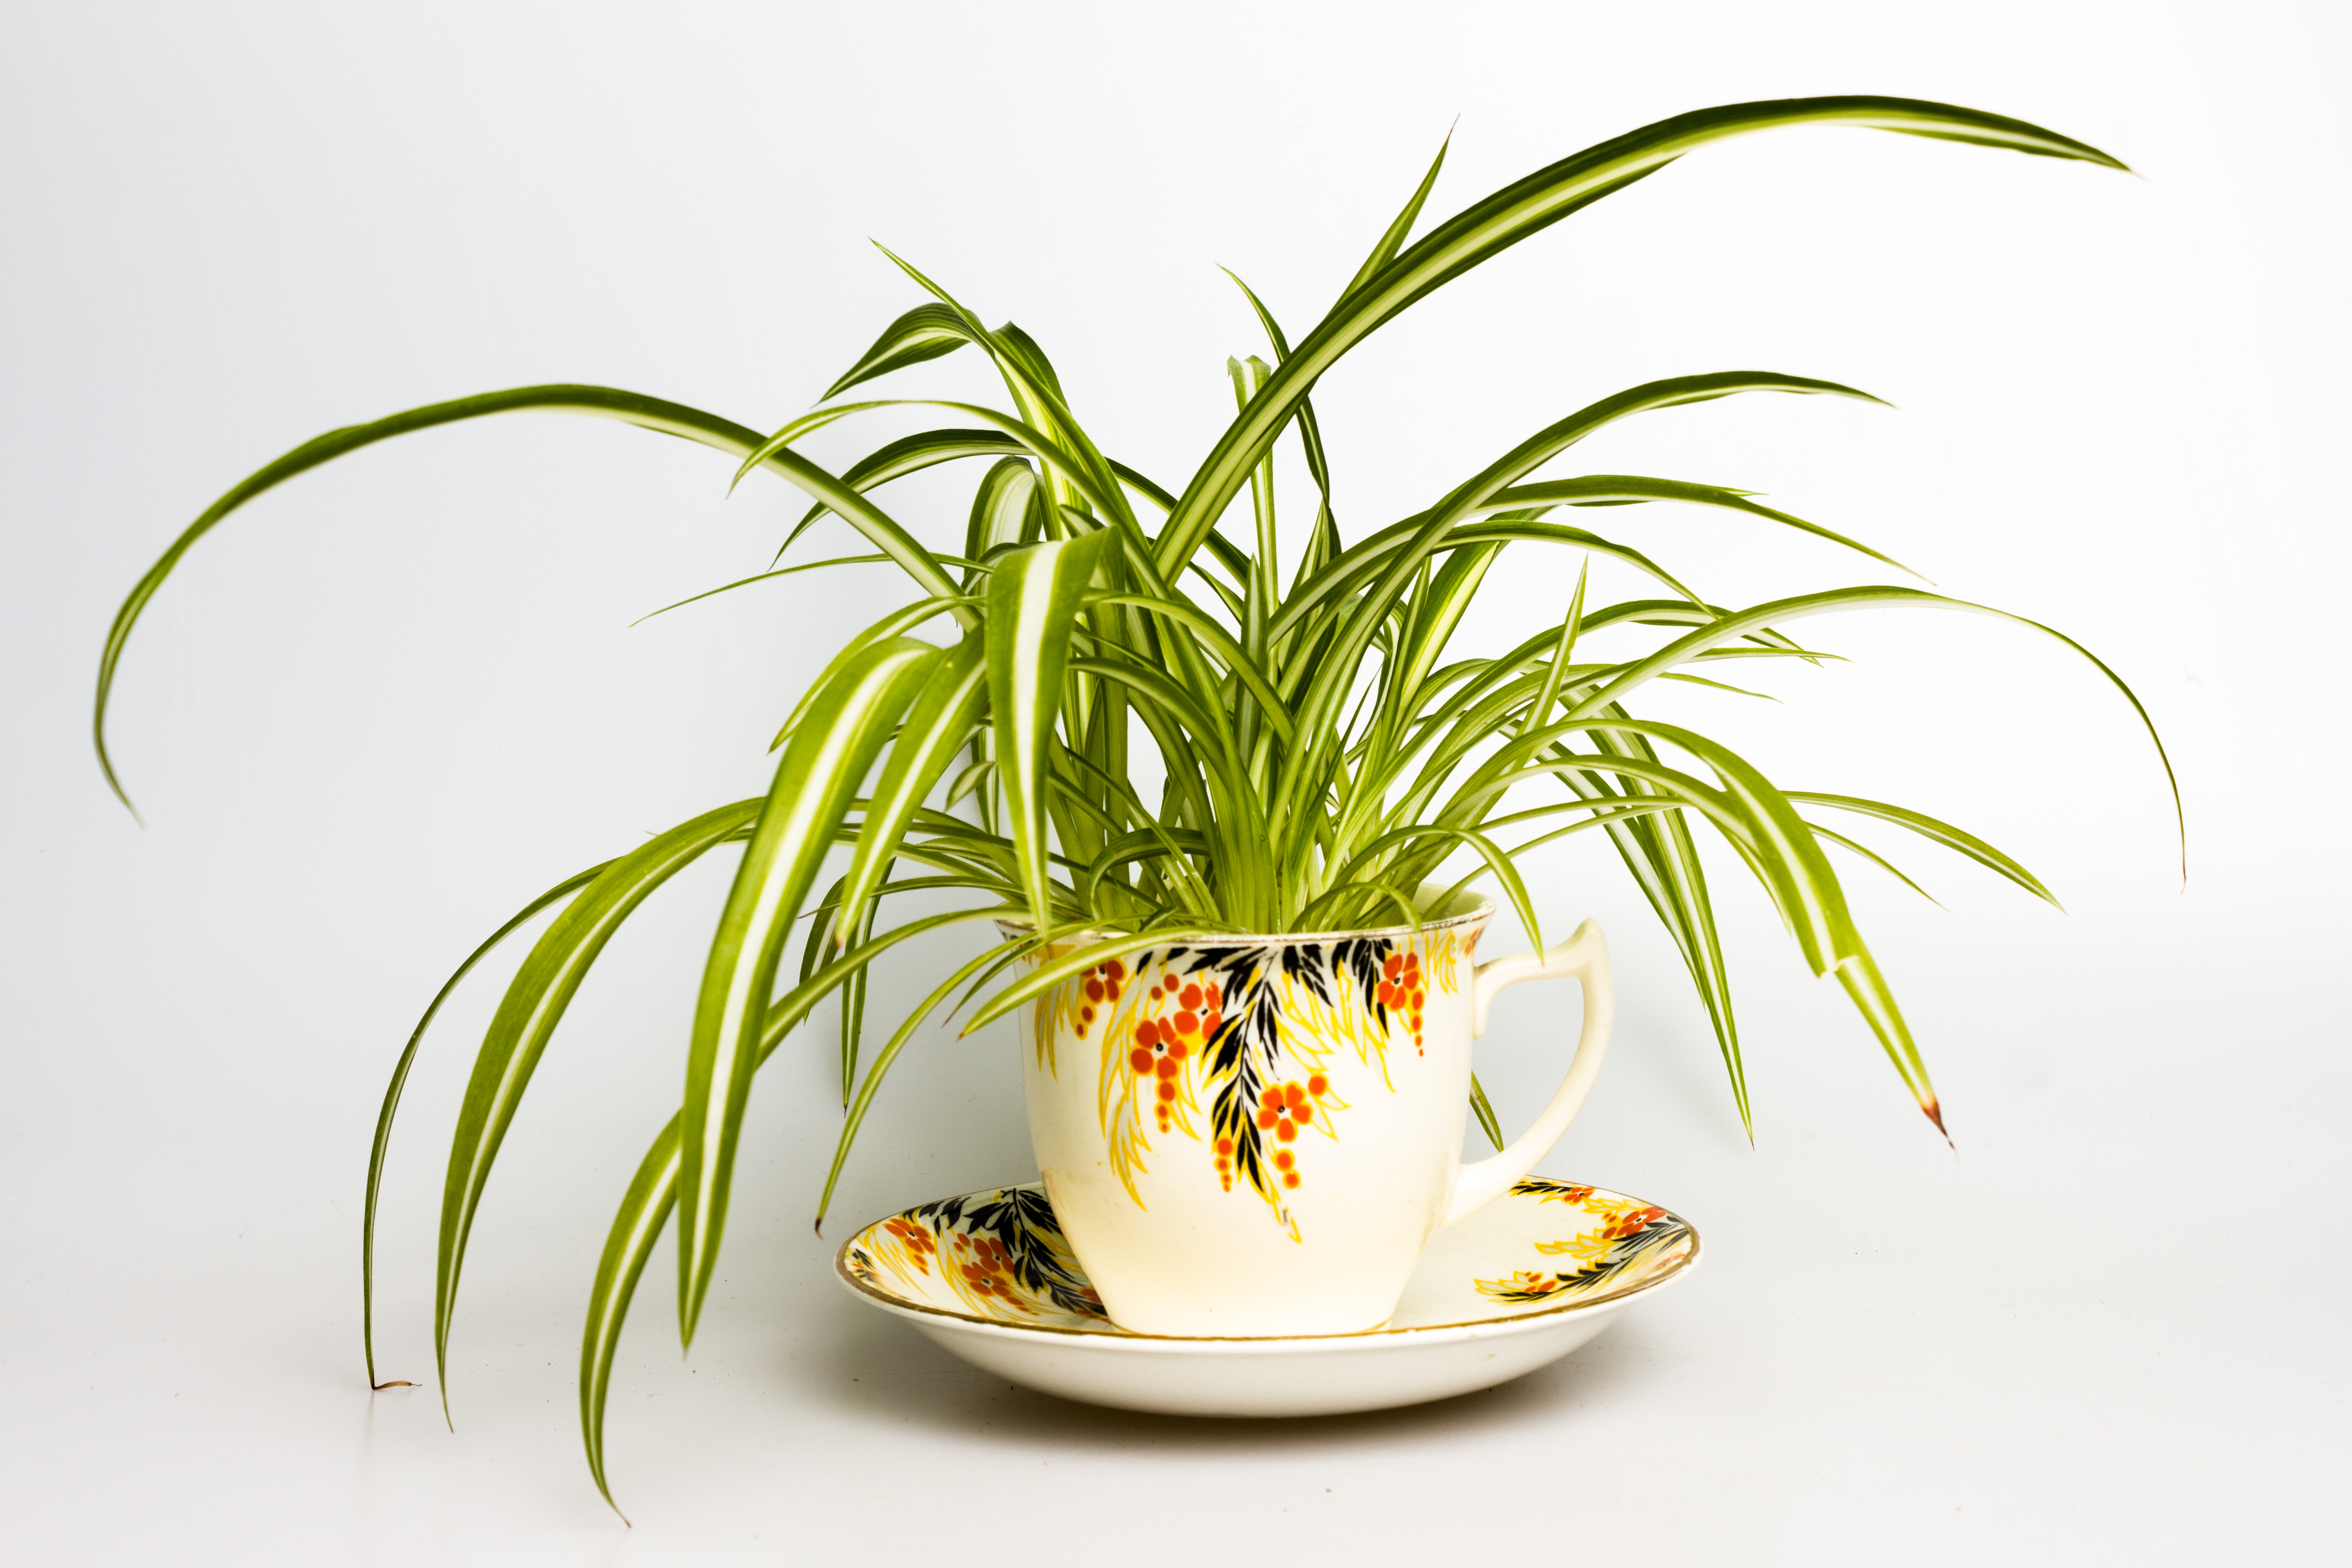 Spider Plant Care Tips to Keep Yours Happy and Healthy Forever